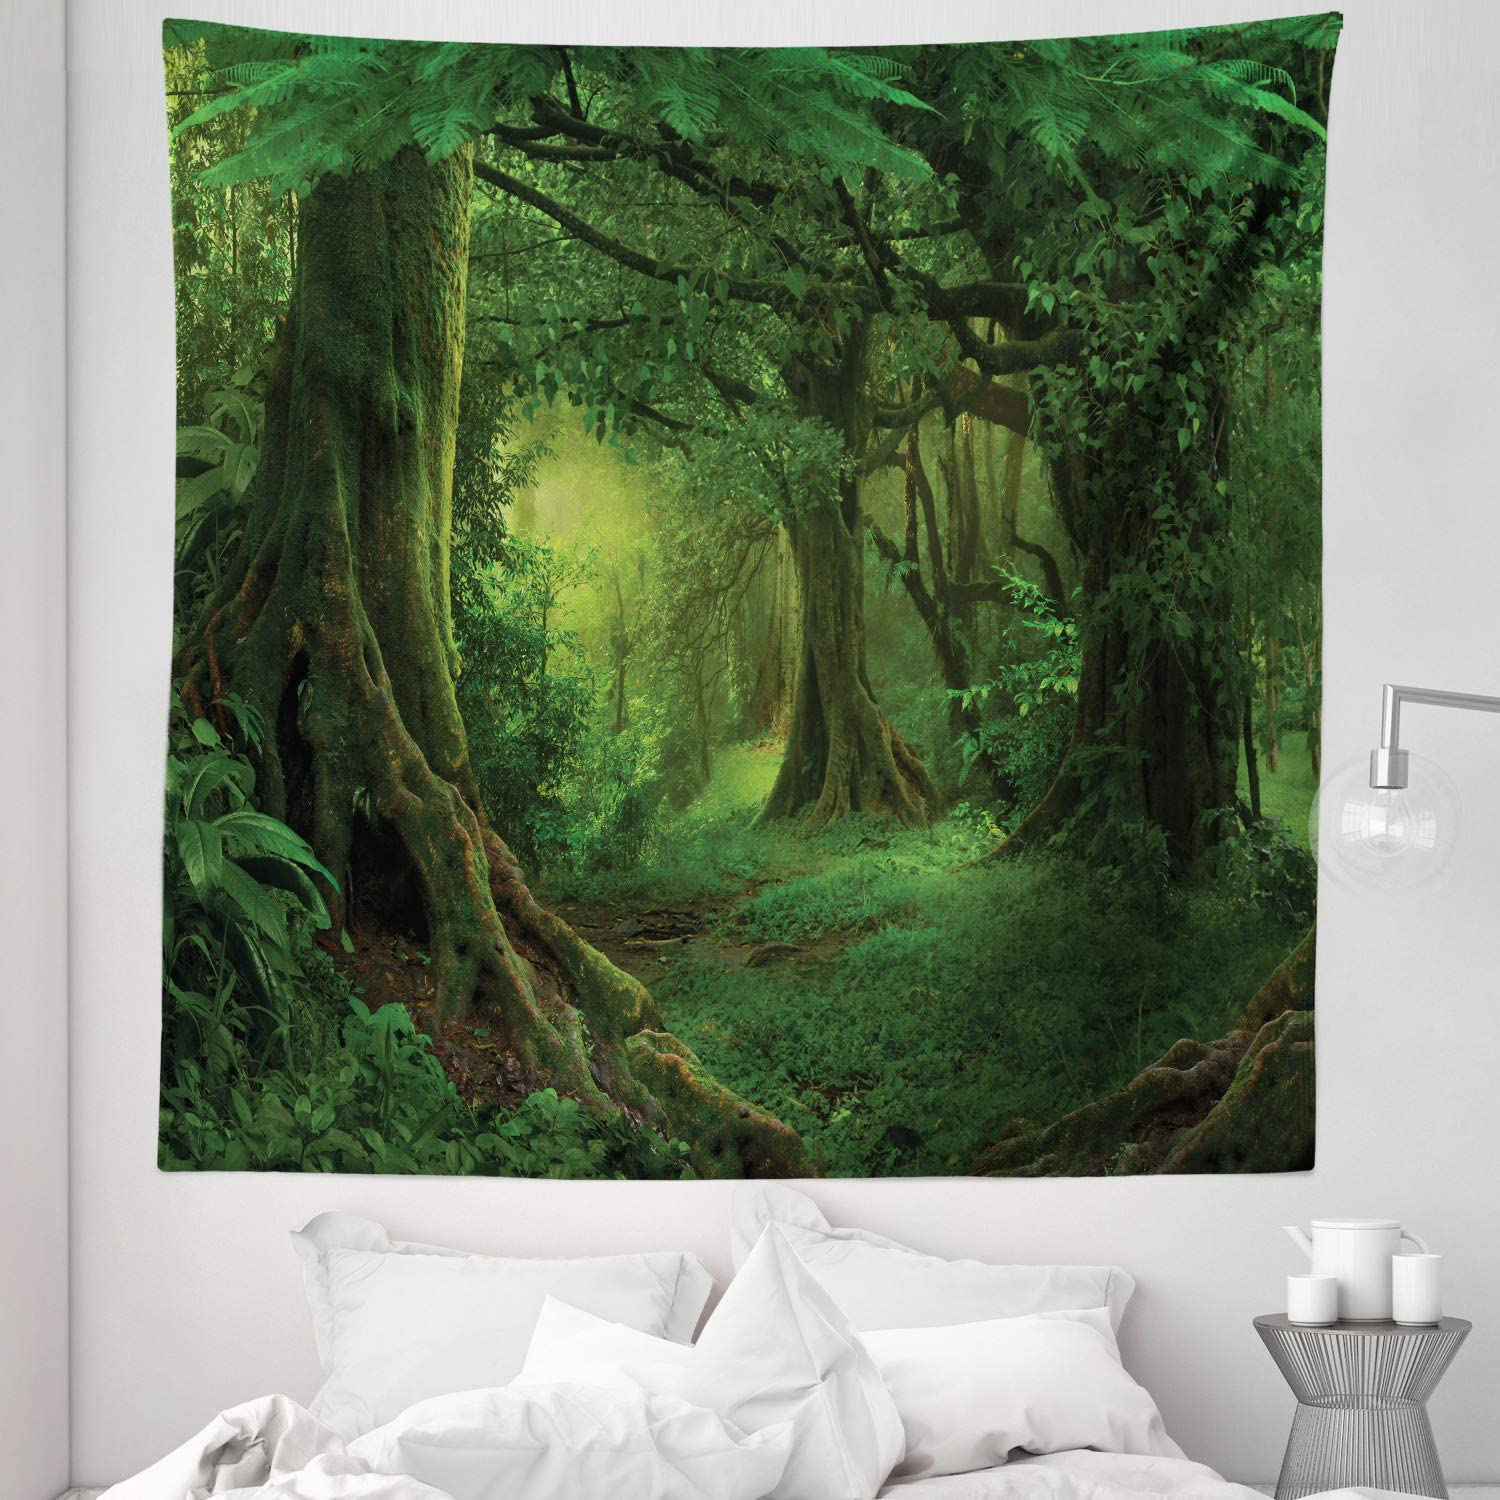 """Lunarable Forest Tapestry Queen Size, Enchanted Woodland Foliage in Deep Tropical Jungle at Southeast Landscape Print, Wall Hanging Bedspread Bed Cover Wall Decor, 88"""" X 88"""", Green"""